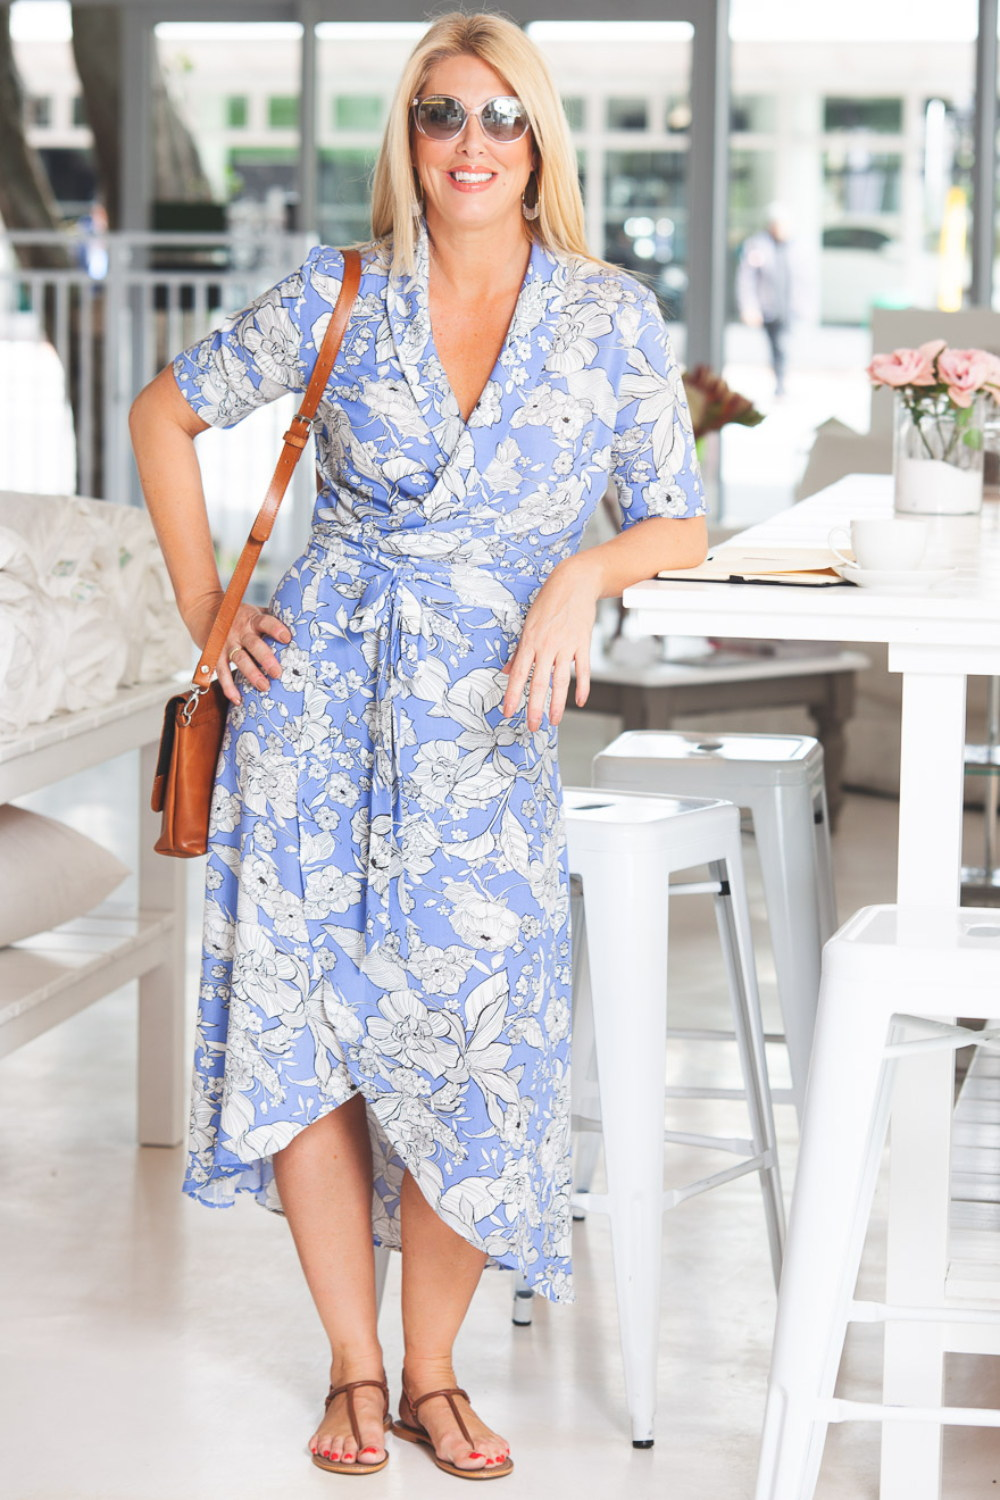 'What I am Wearing' Summer Edition - Oh My! from Off The Rails Fashionista